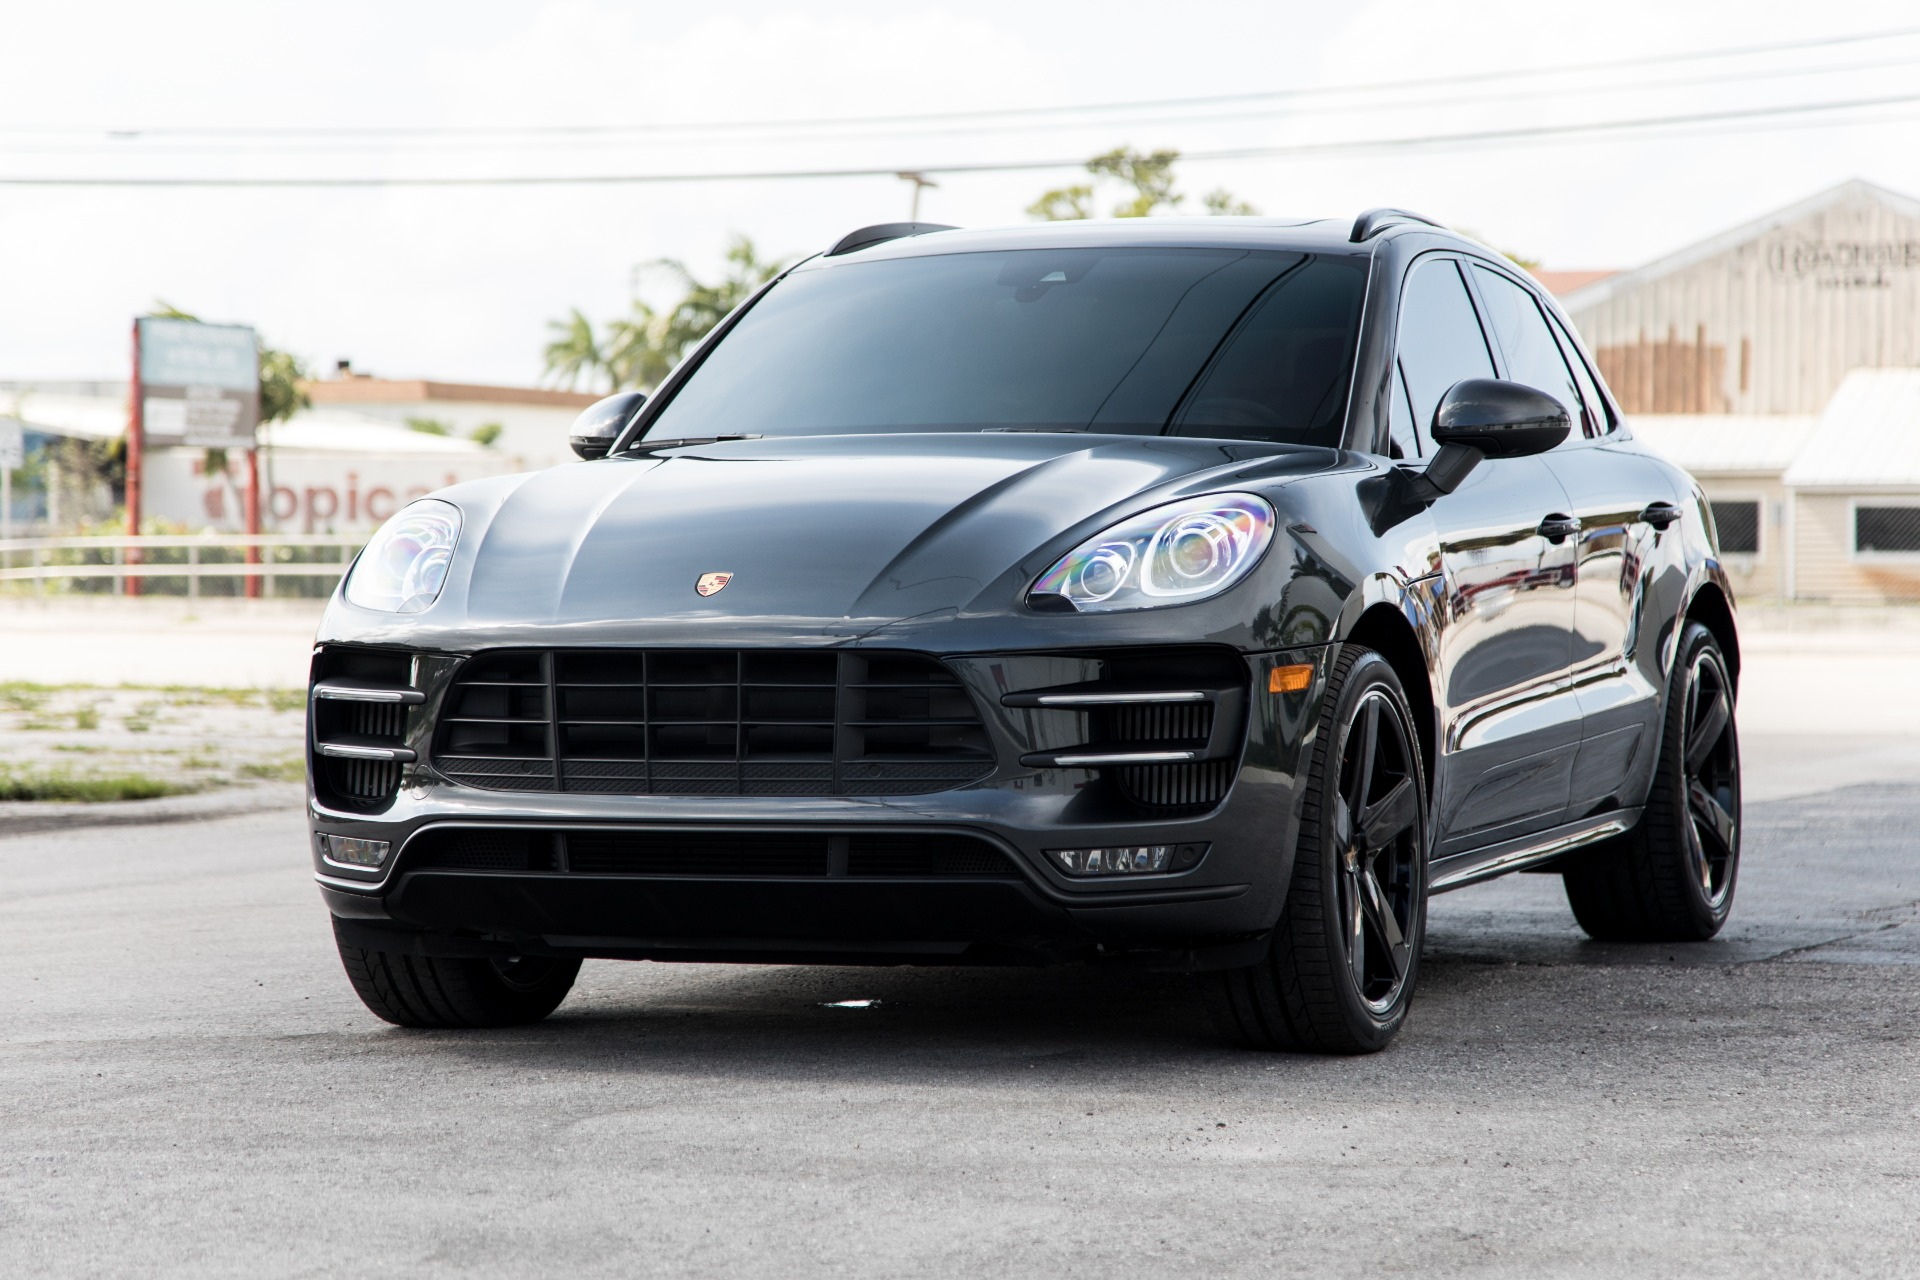 Used-2018-Porsche-Macan-Turbo